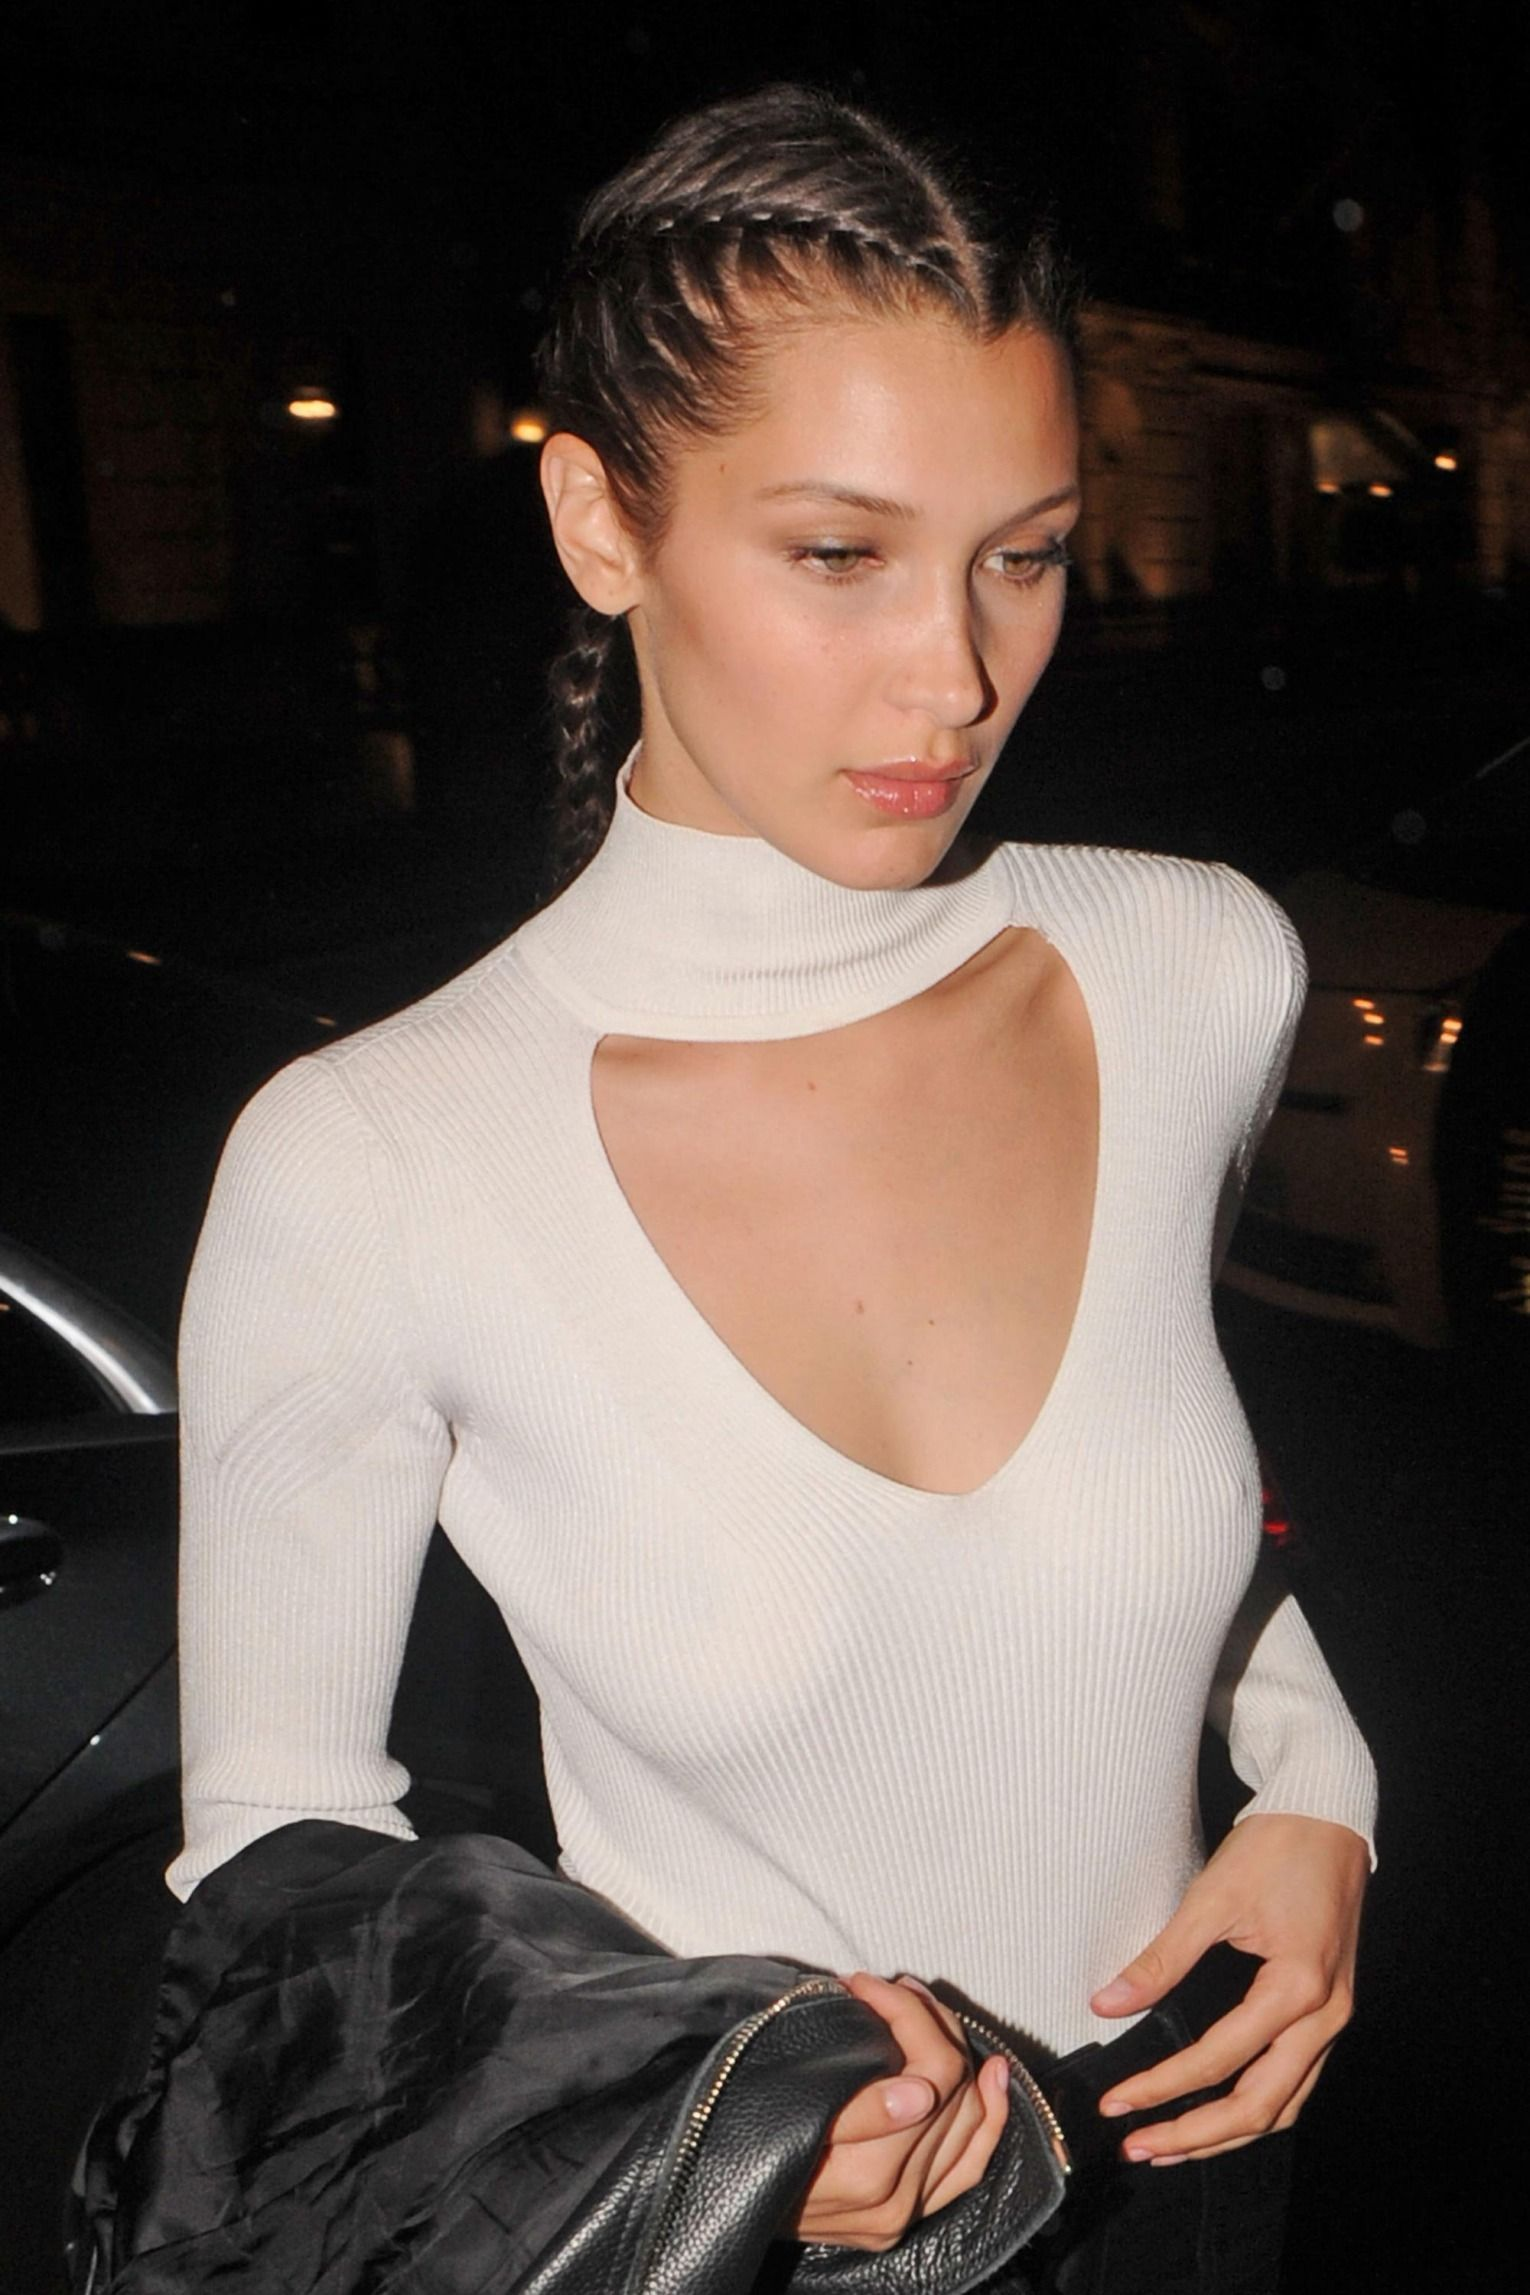 What Should I Do With My Hair? 11 Boring Hair Hacks From Celebs #bellahadid